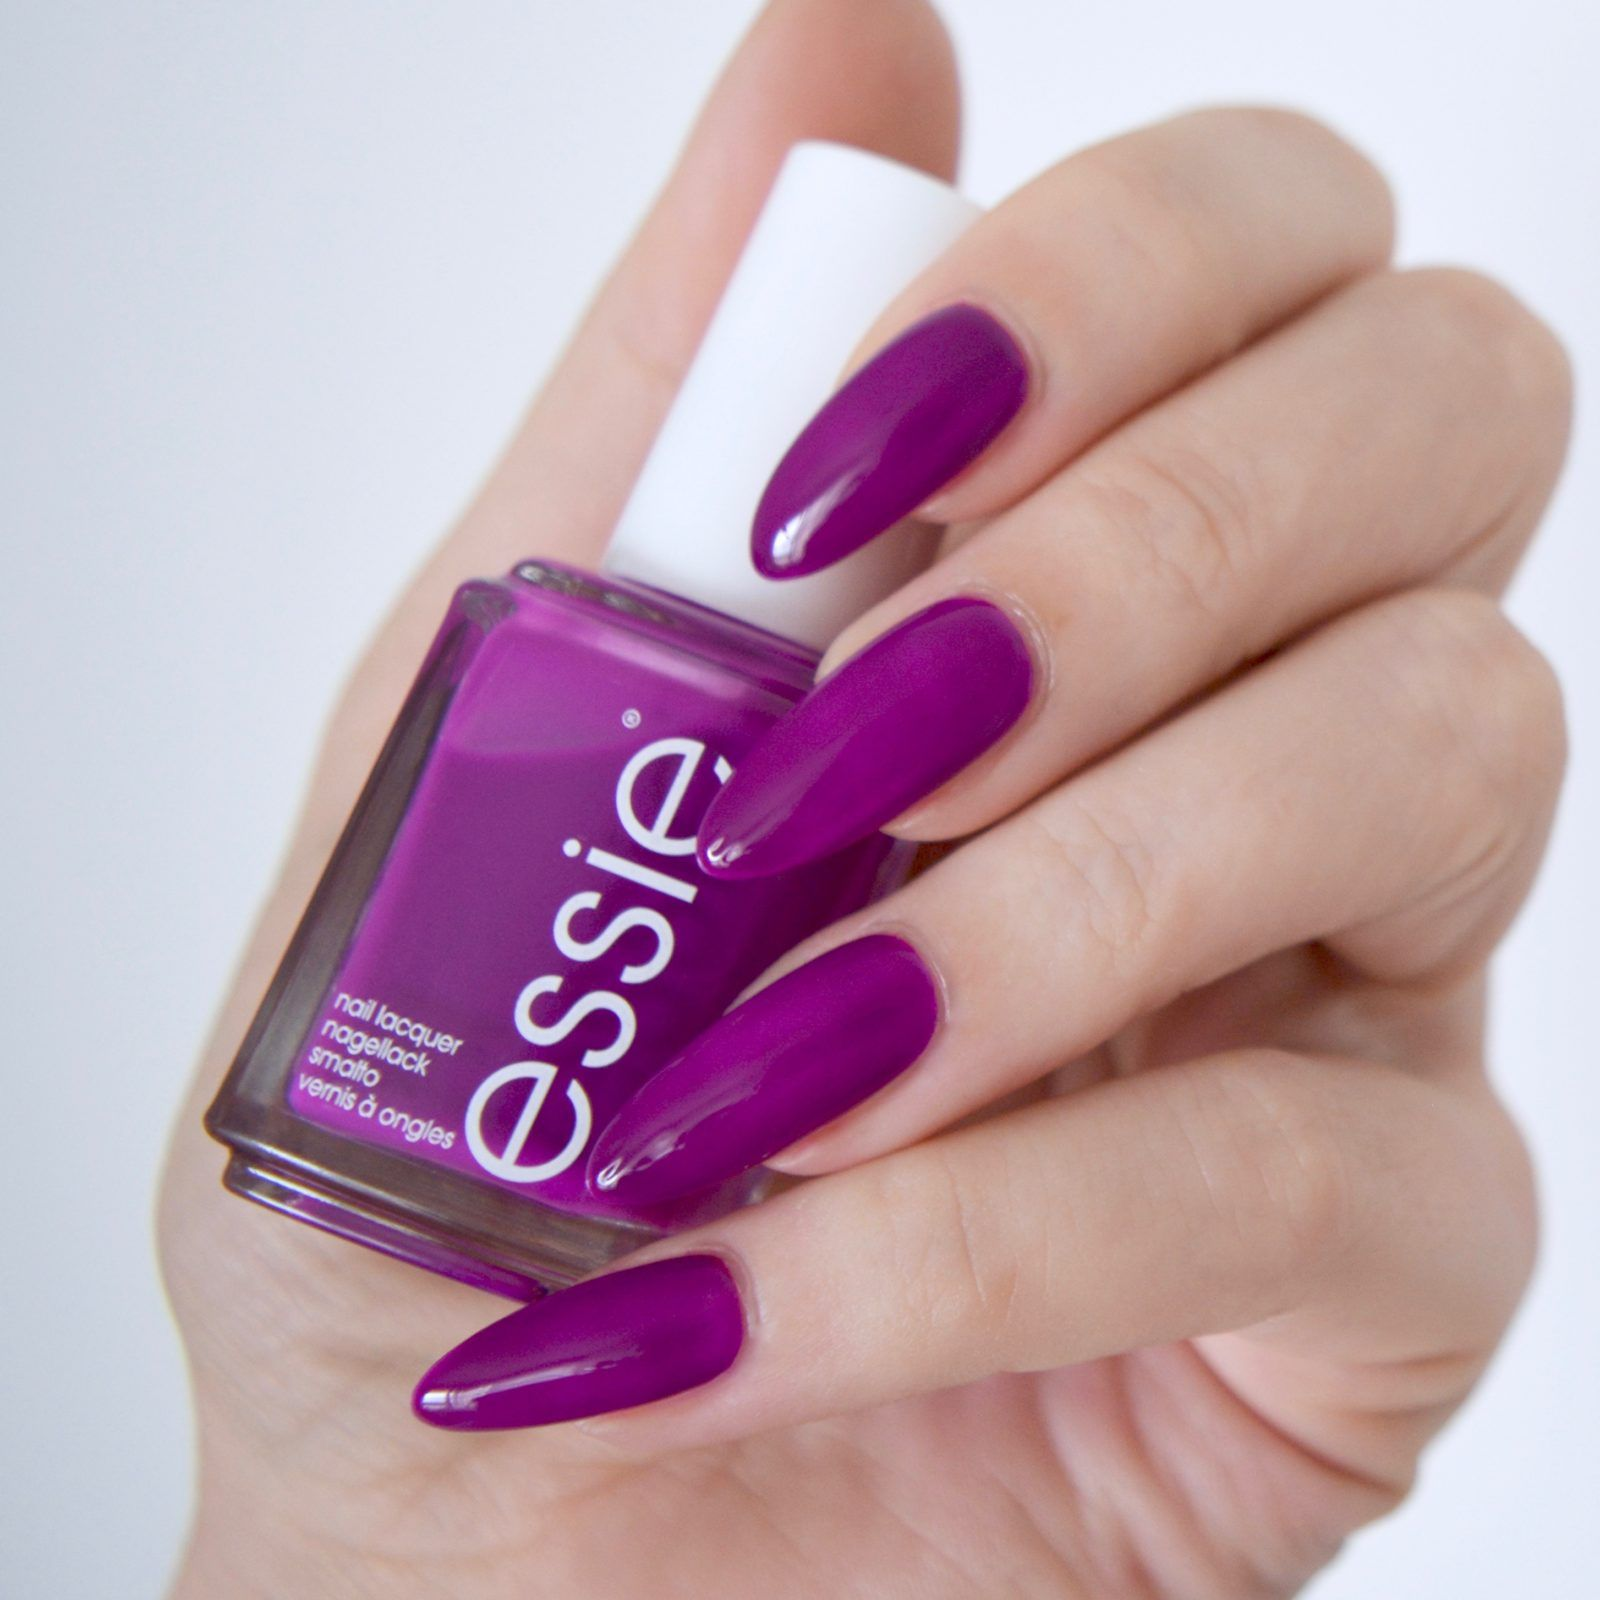 Essie Neon 2017 Review With Swatches | Neon purple, Neon and Manicure